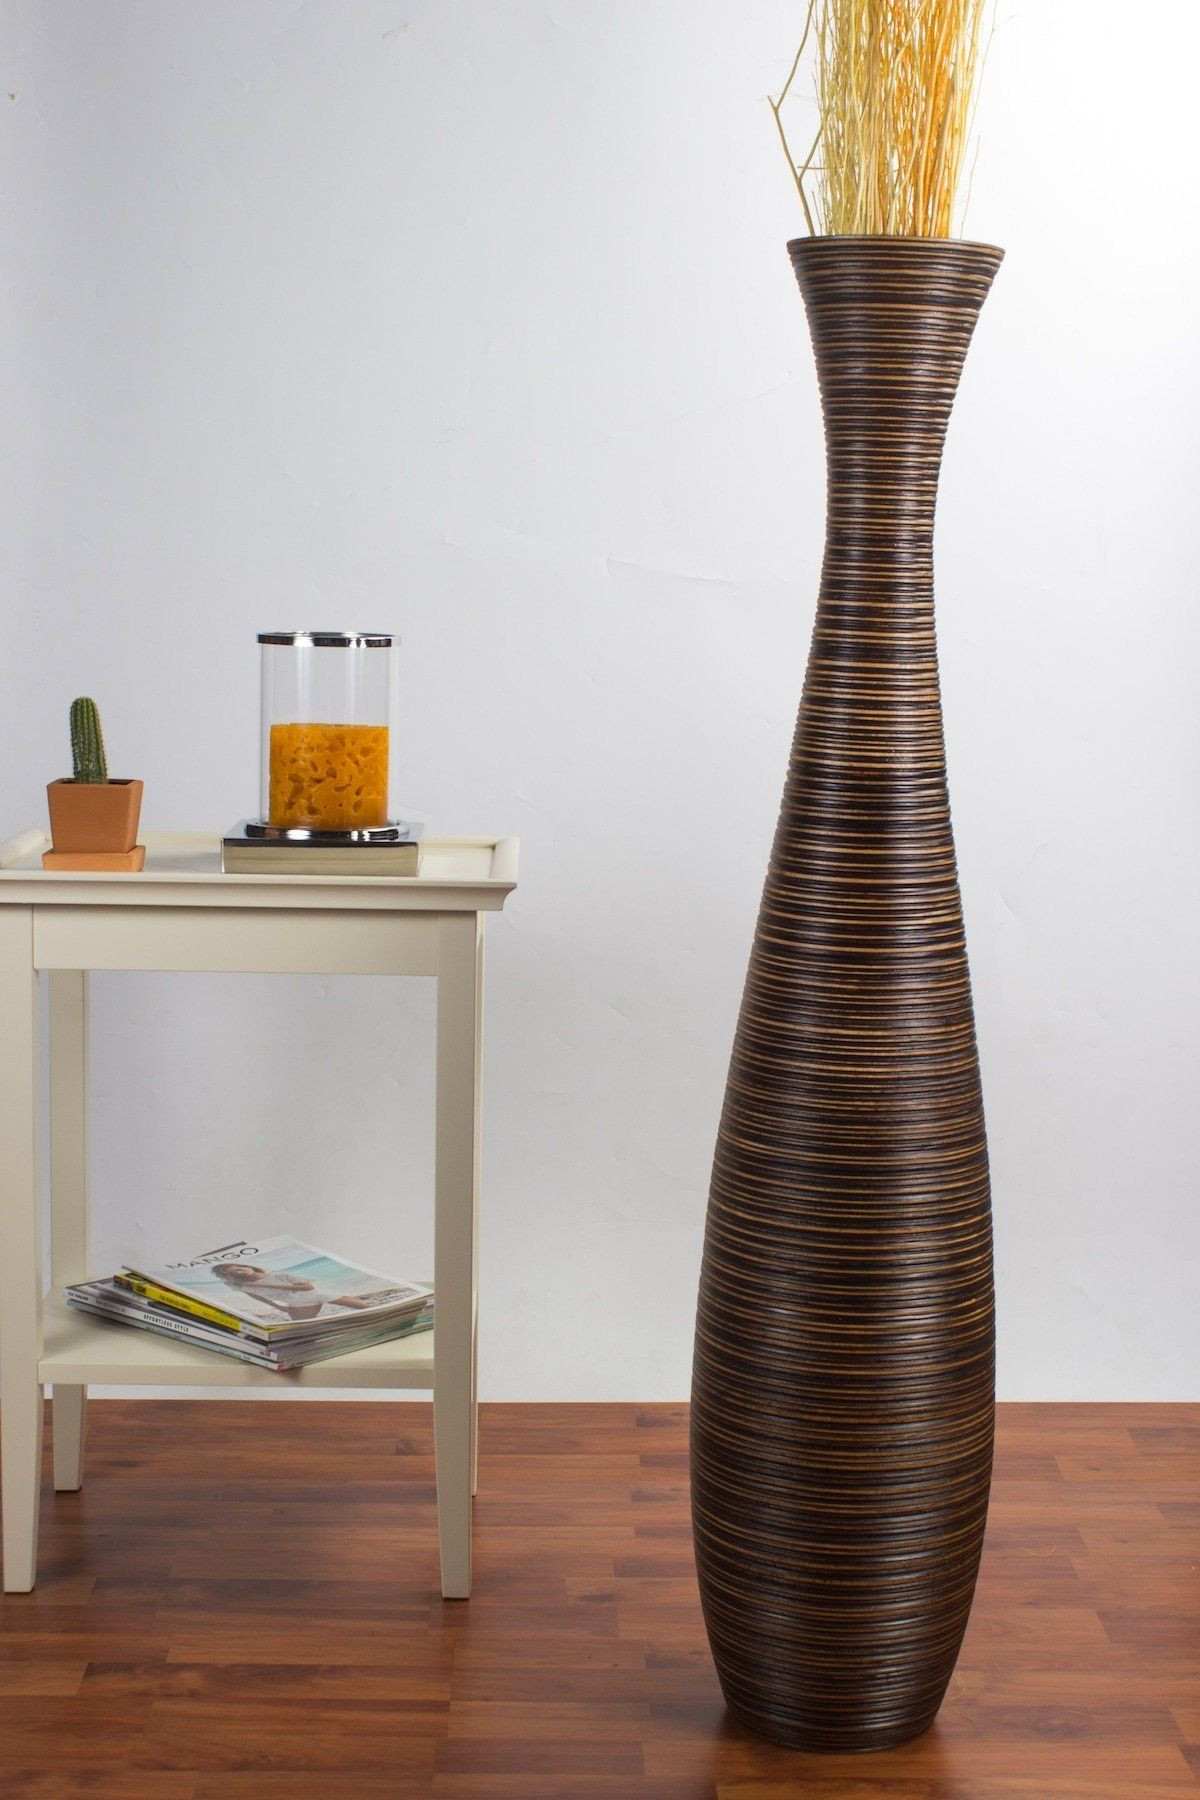 tall gray floor vase of tall vase with sticks new tall floor vase 44 inches wood brown regarding tall vase with sticks new tall floor vase 44 inches wood brown unique and distinguished